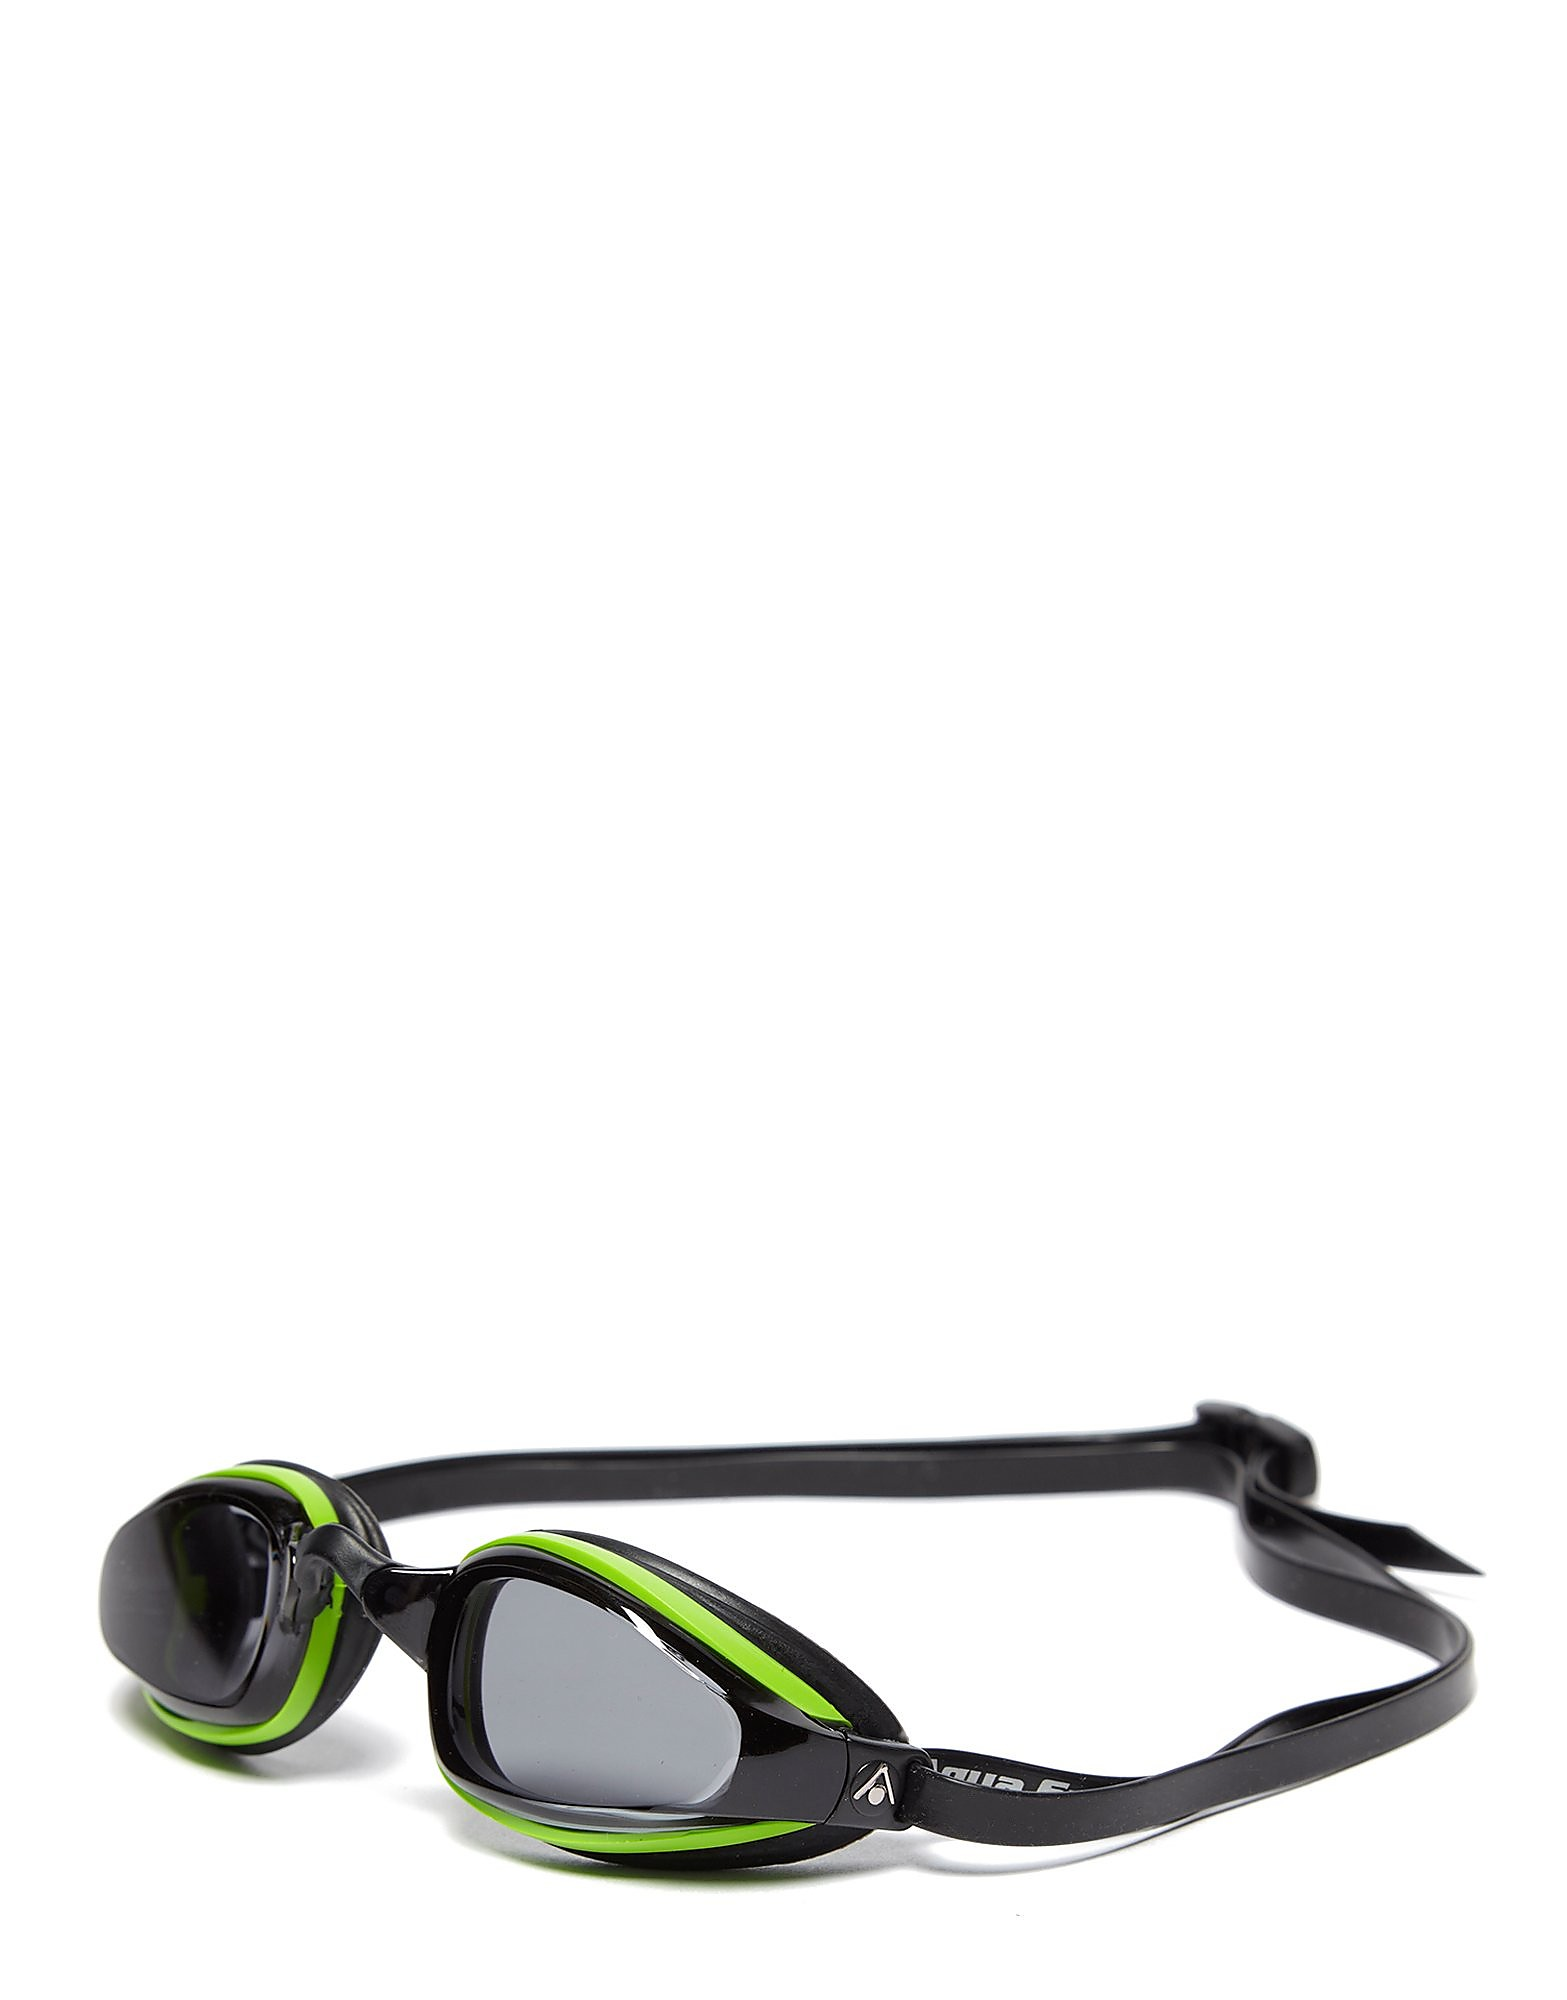 MP - Michael Phelps K180+ Goggles (Dark Lens)